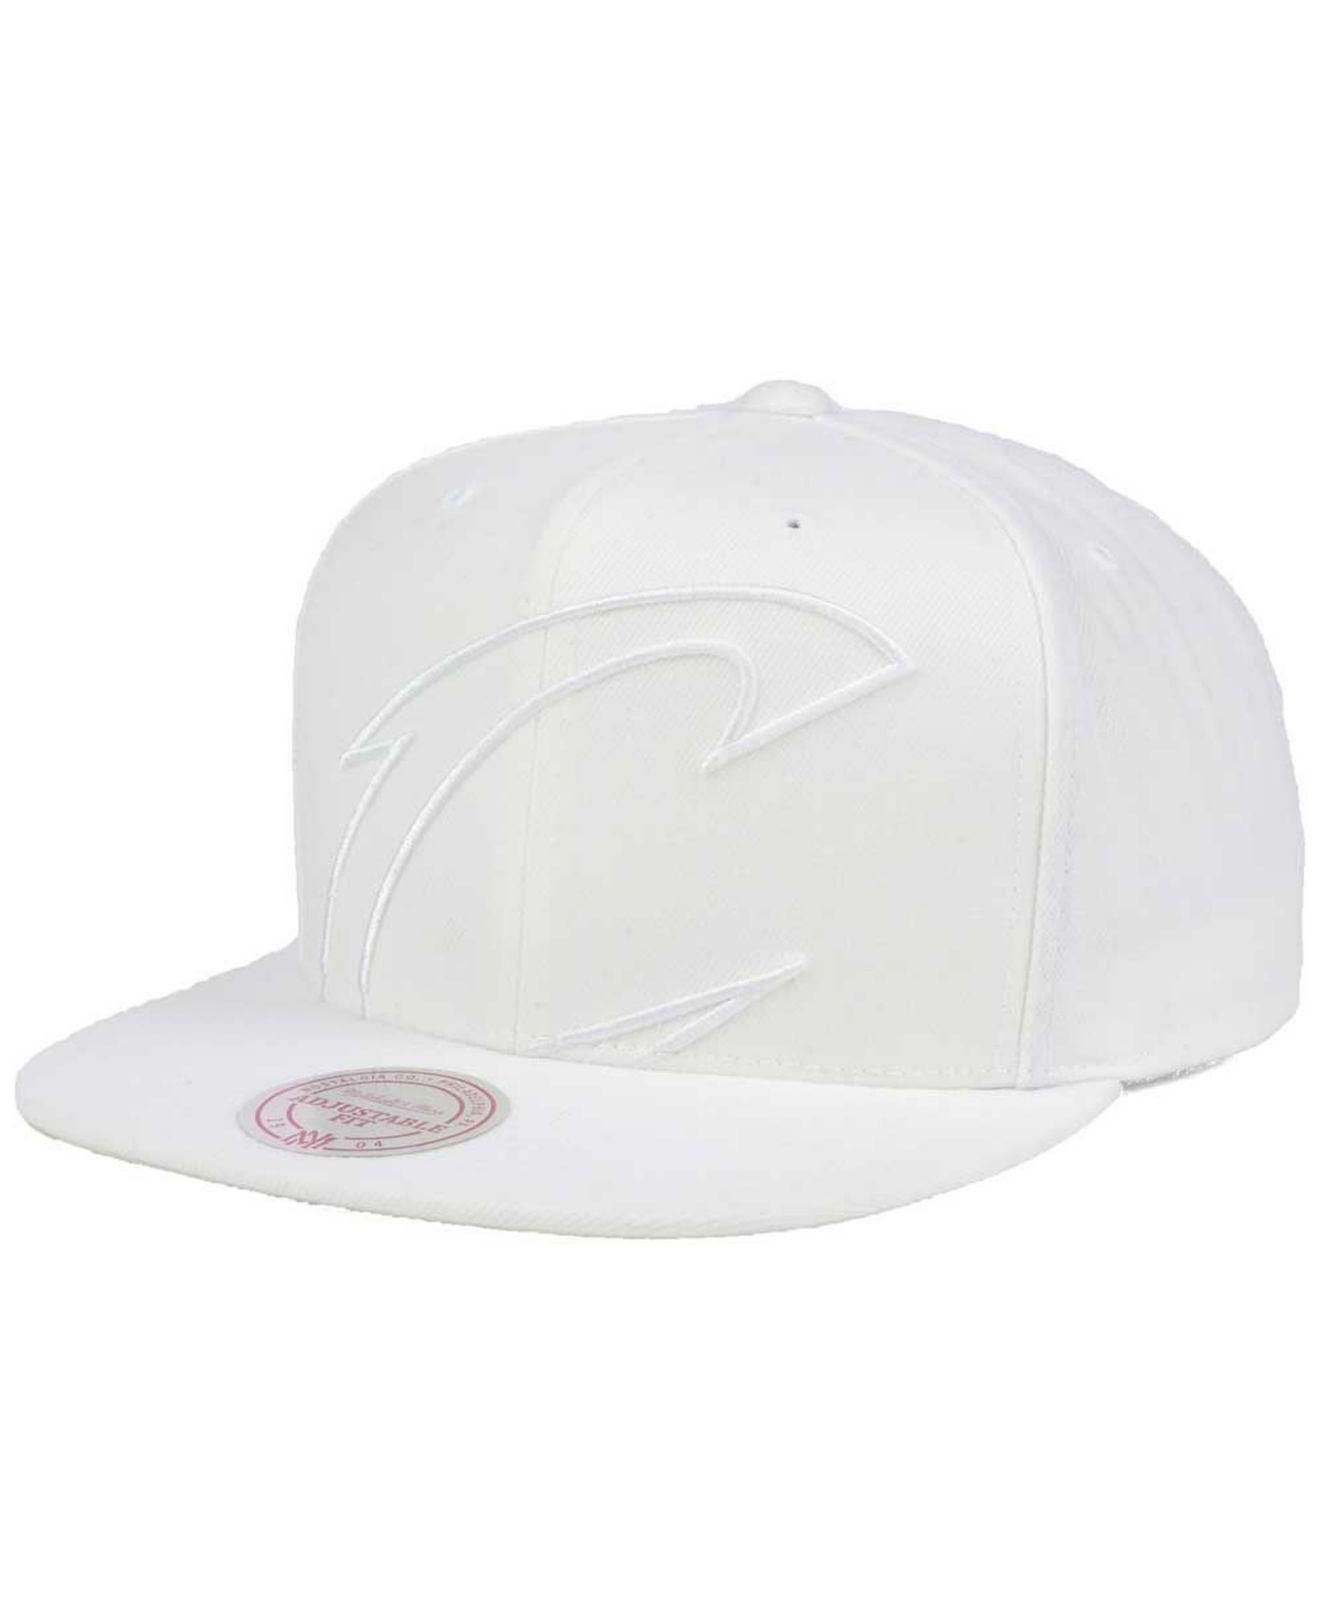 online store 5bacc b93d1 new arrivals mitchell ness. mens white cleveland cavaliers cropped xl logo snapback  cap 926ba b918d